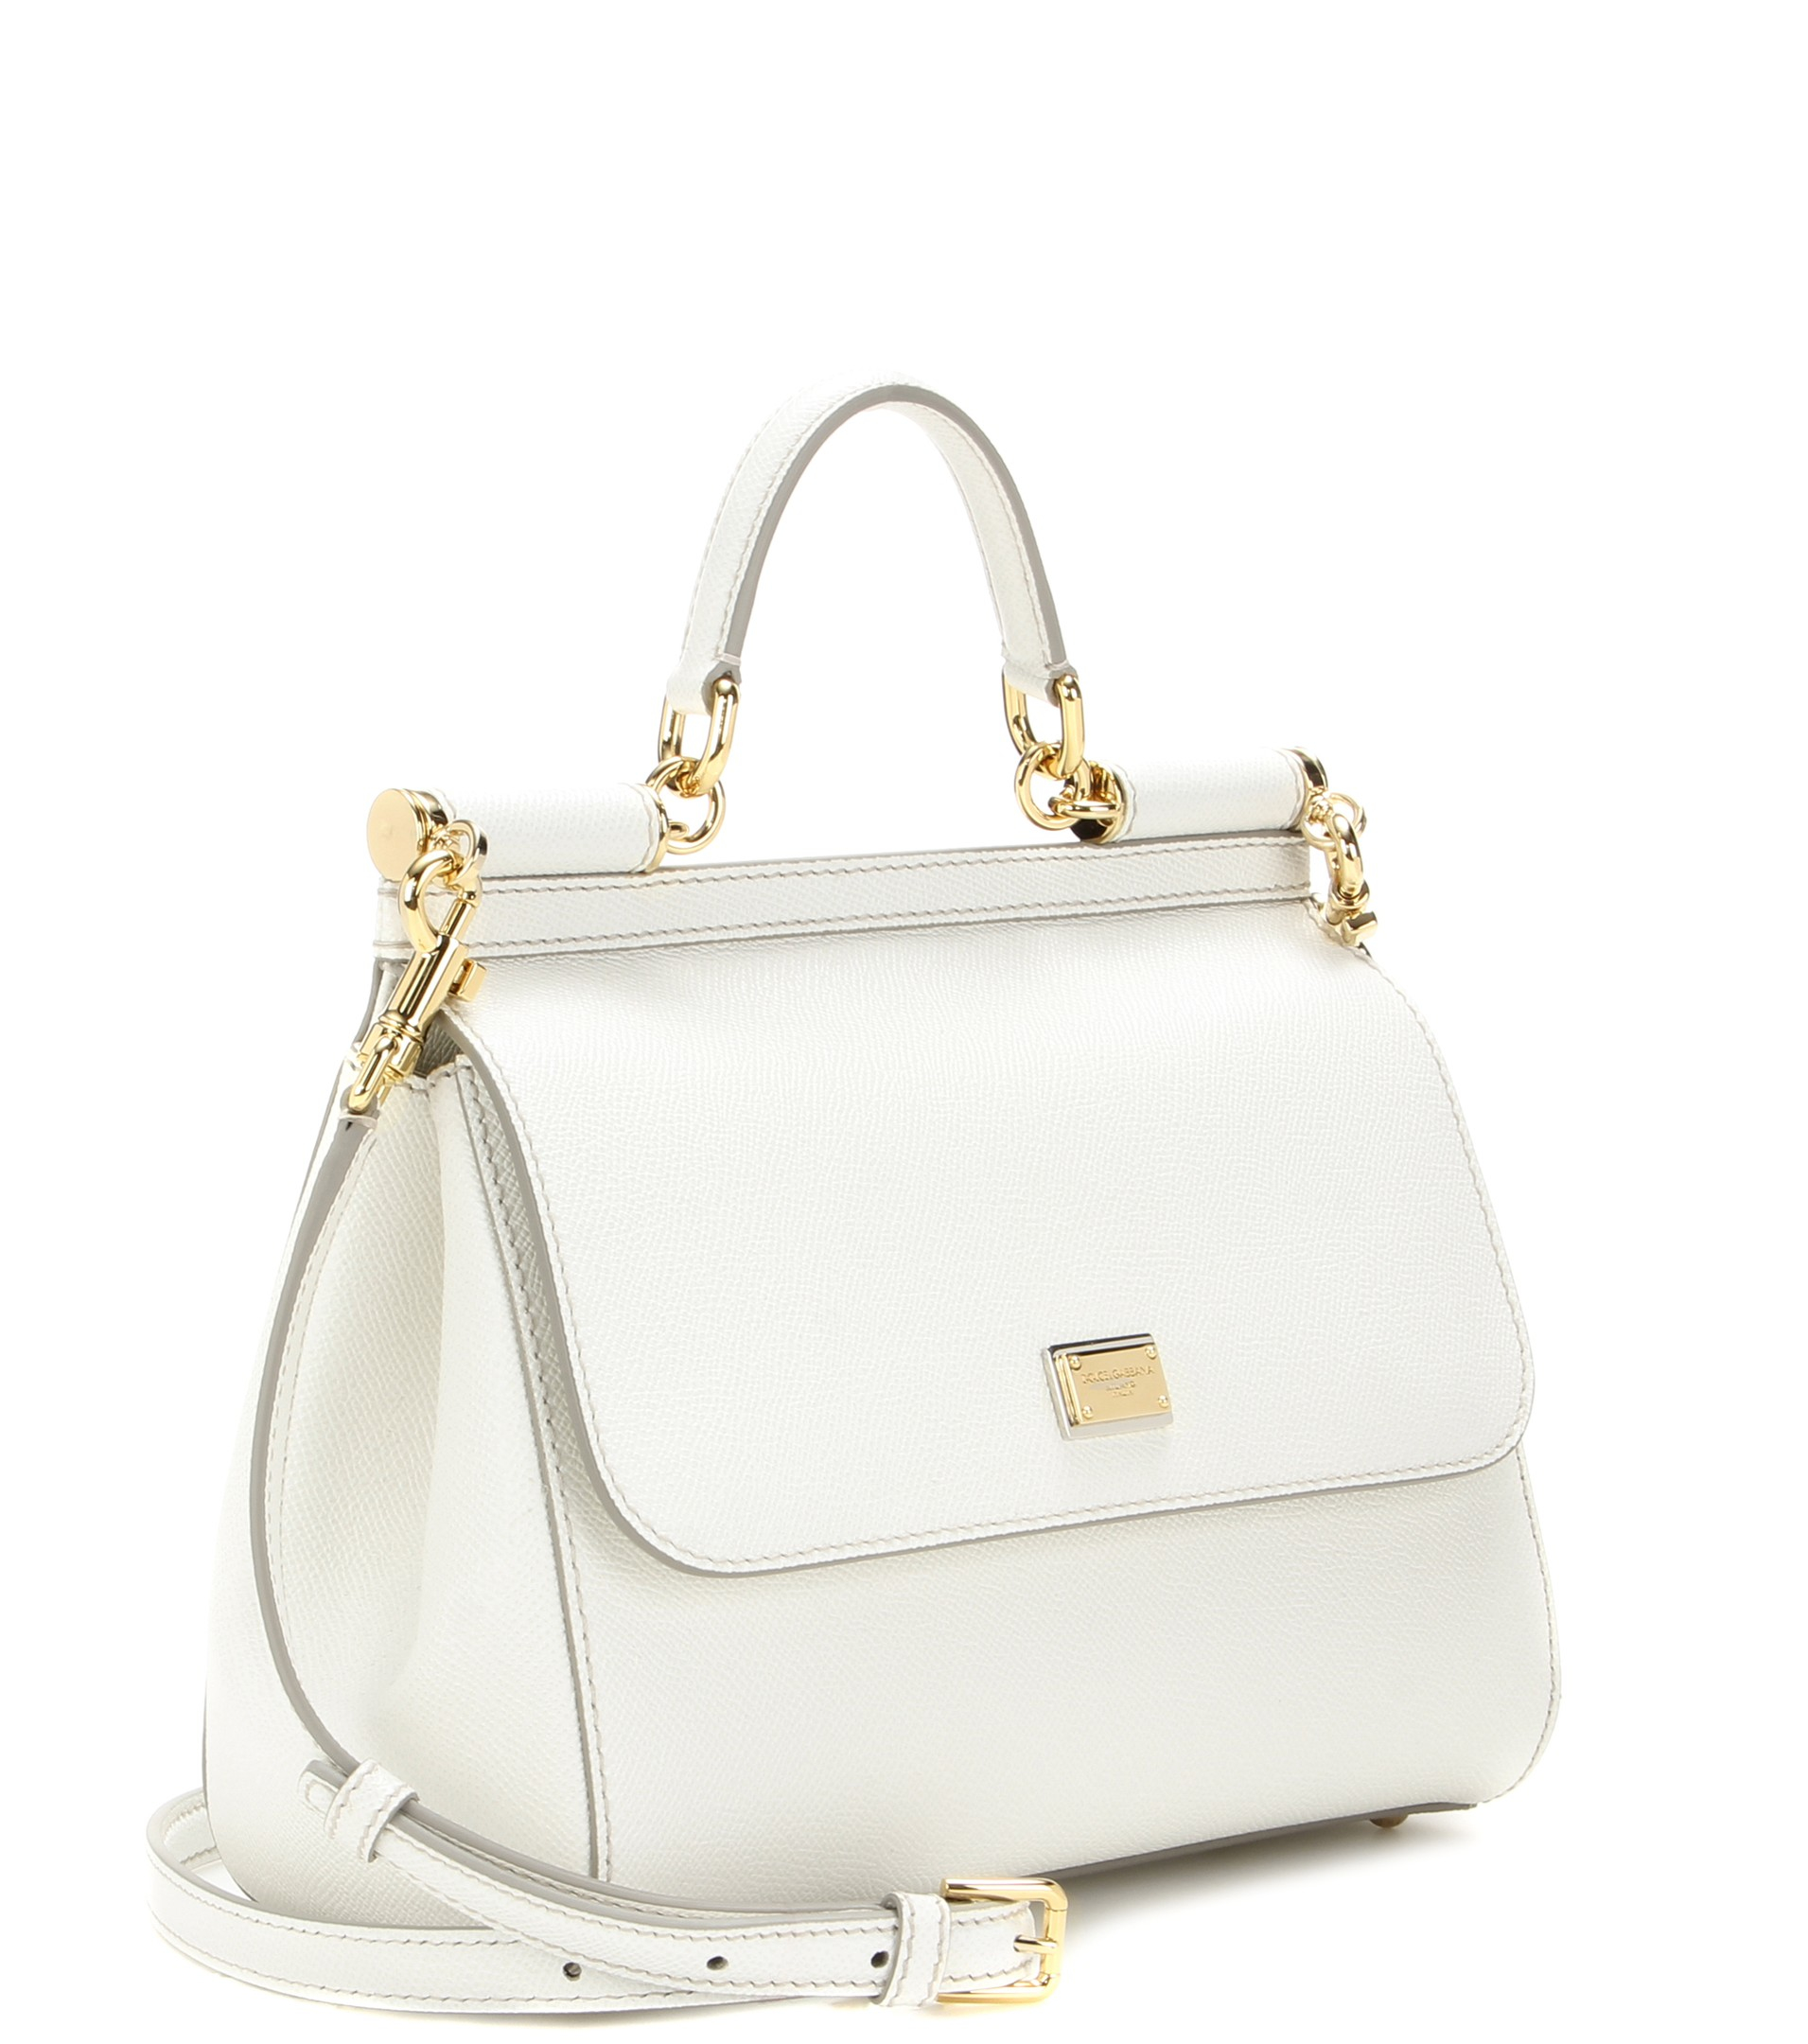 bba20ececdbb Dolce And Gabbana White Leather Purse - Best Purse Image Ccdbb.Org